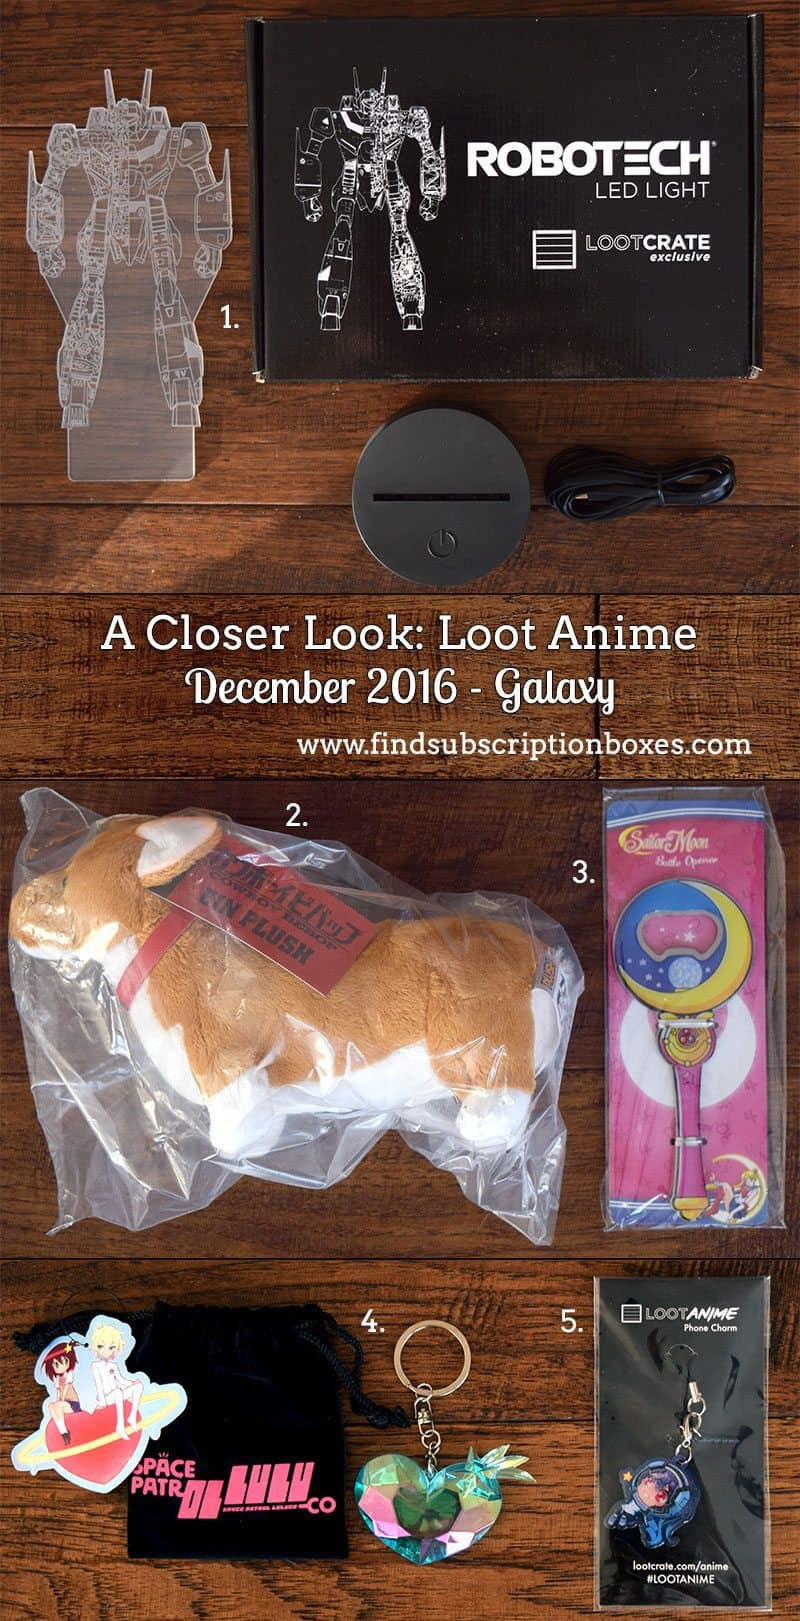 December 2016 Loot Anime Review - Inside the Box